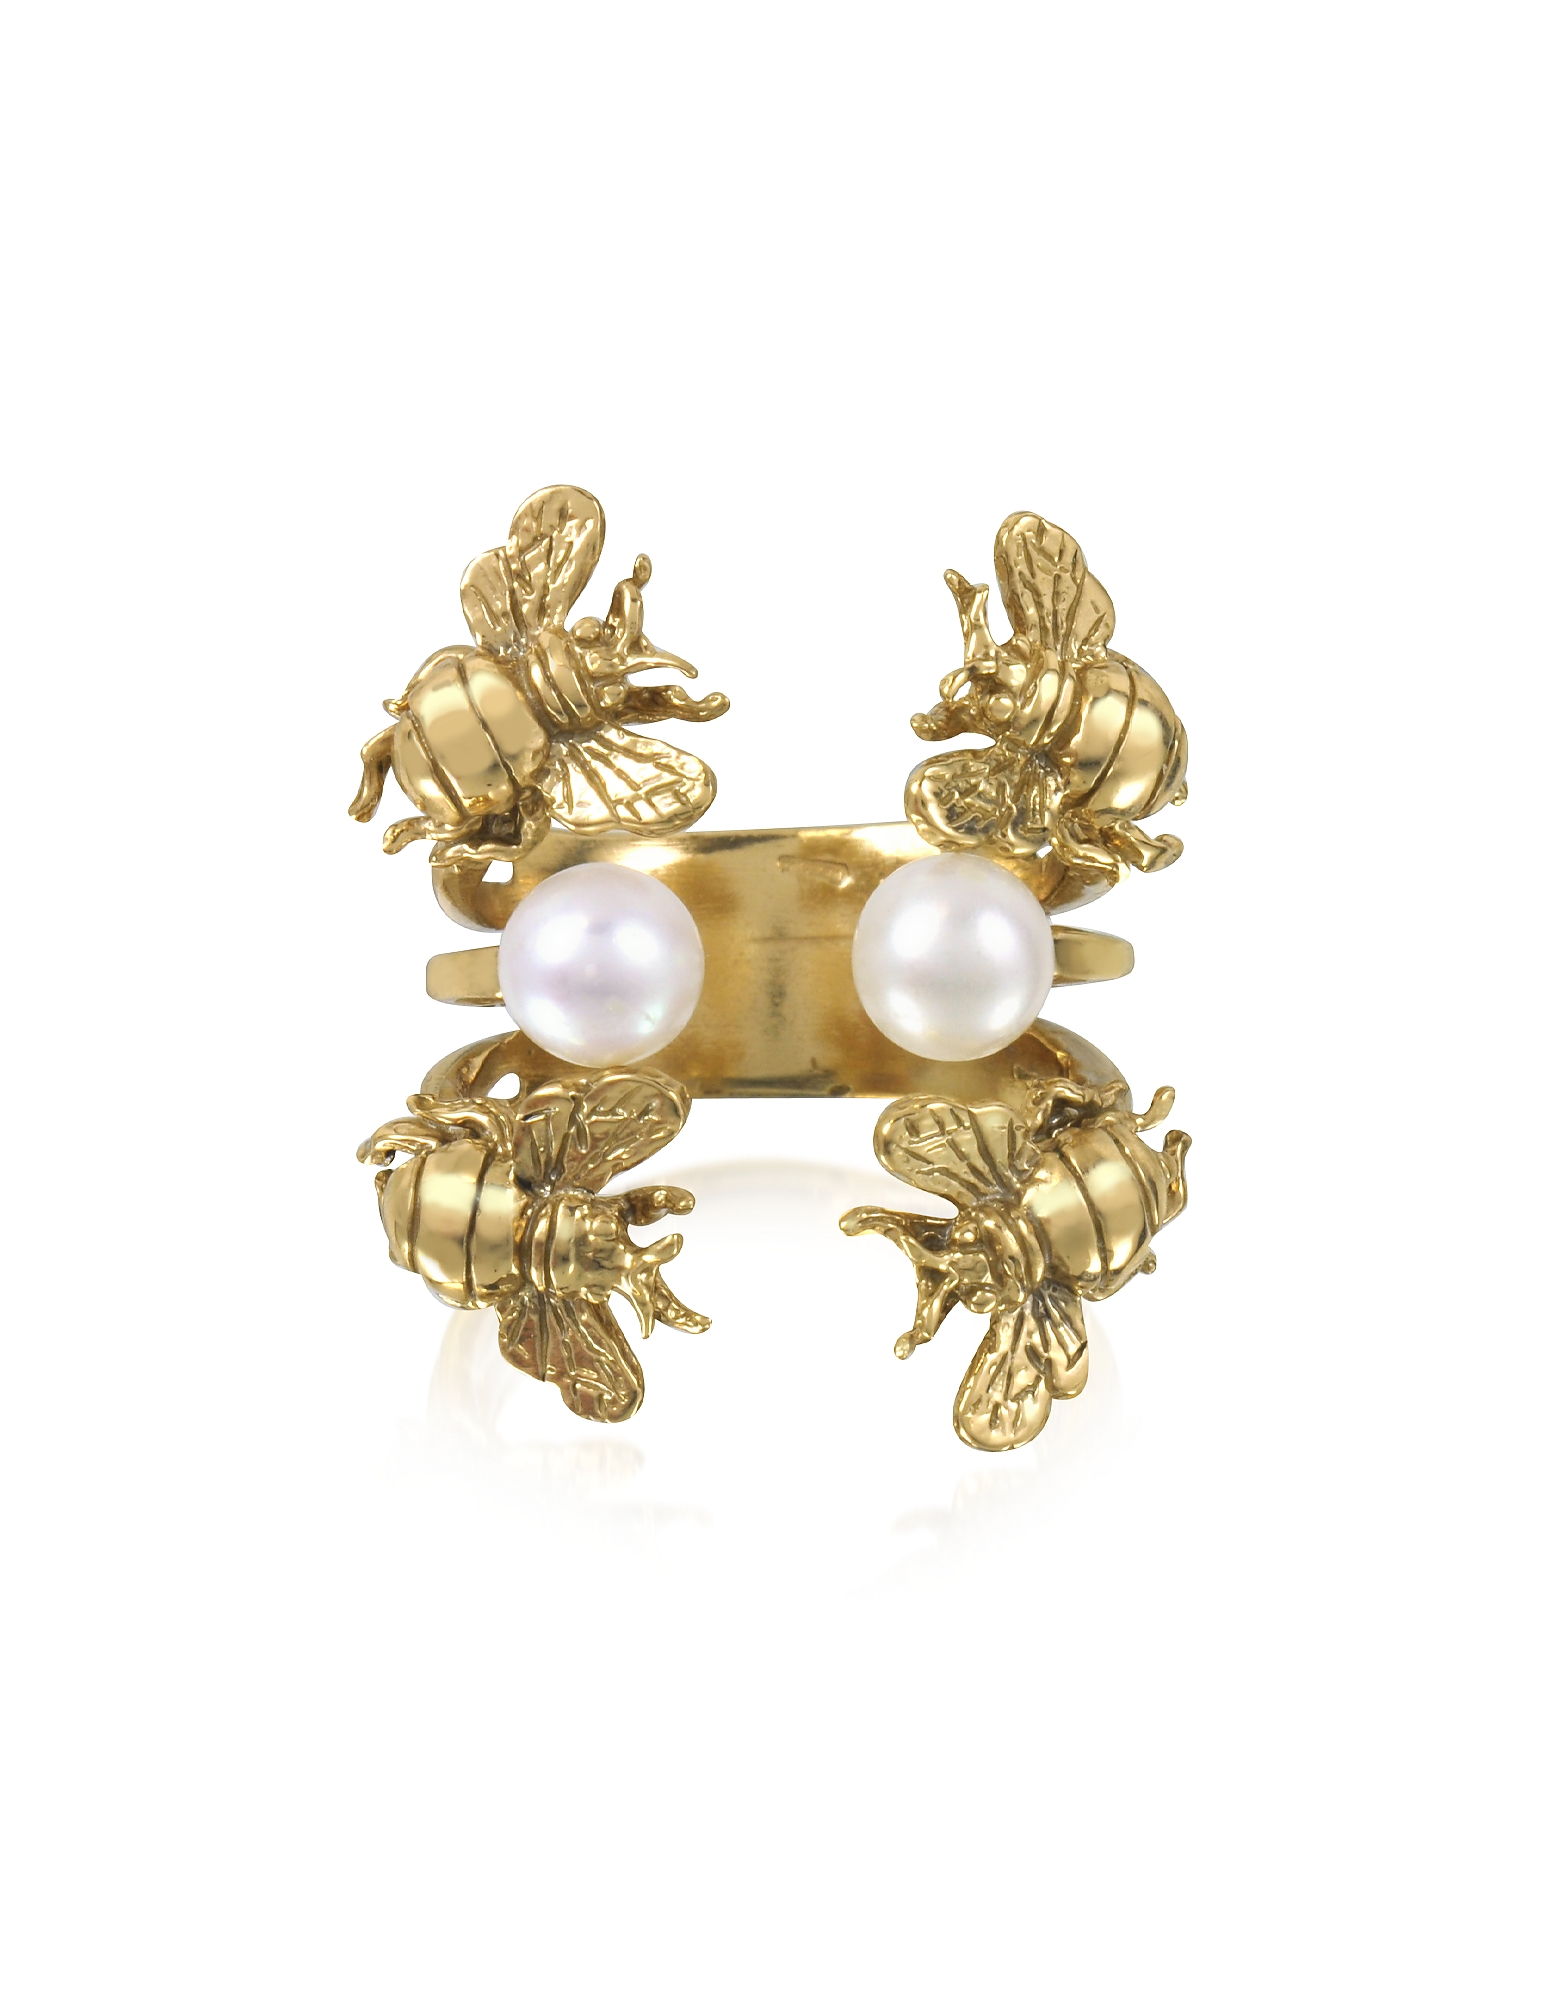 Bernard Delettrez Rings, Bees and Pearls Bronze Ring